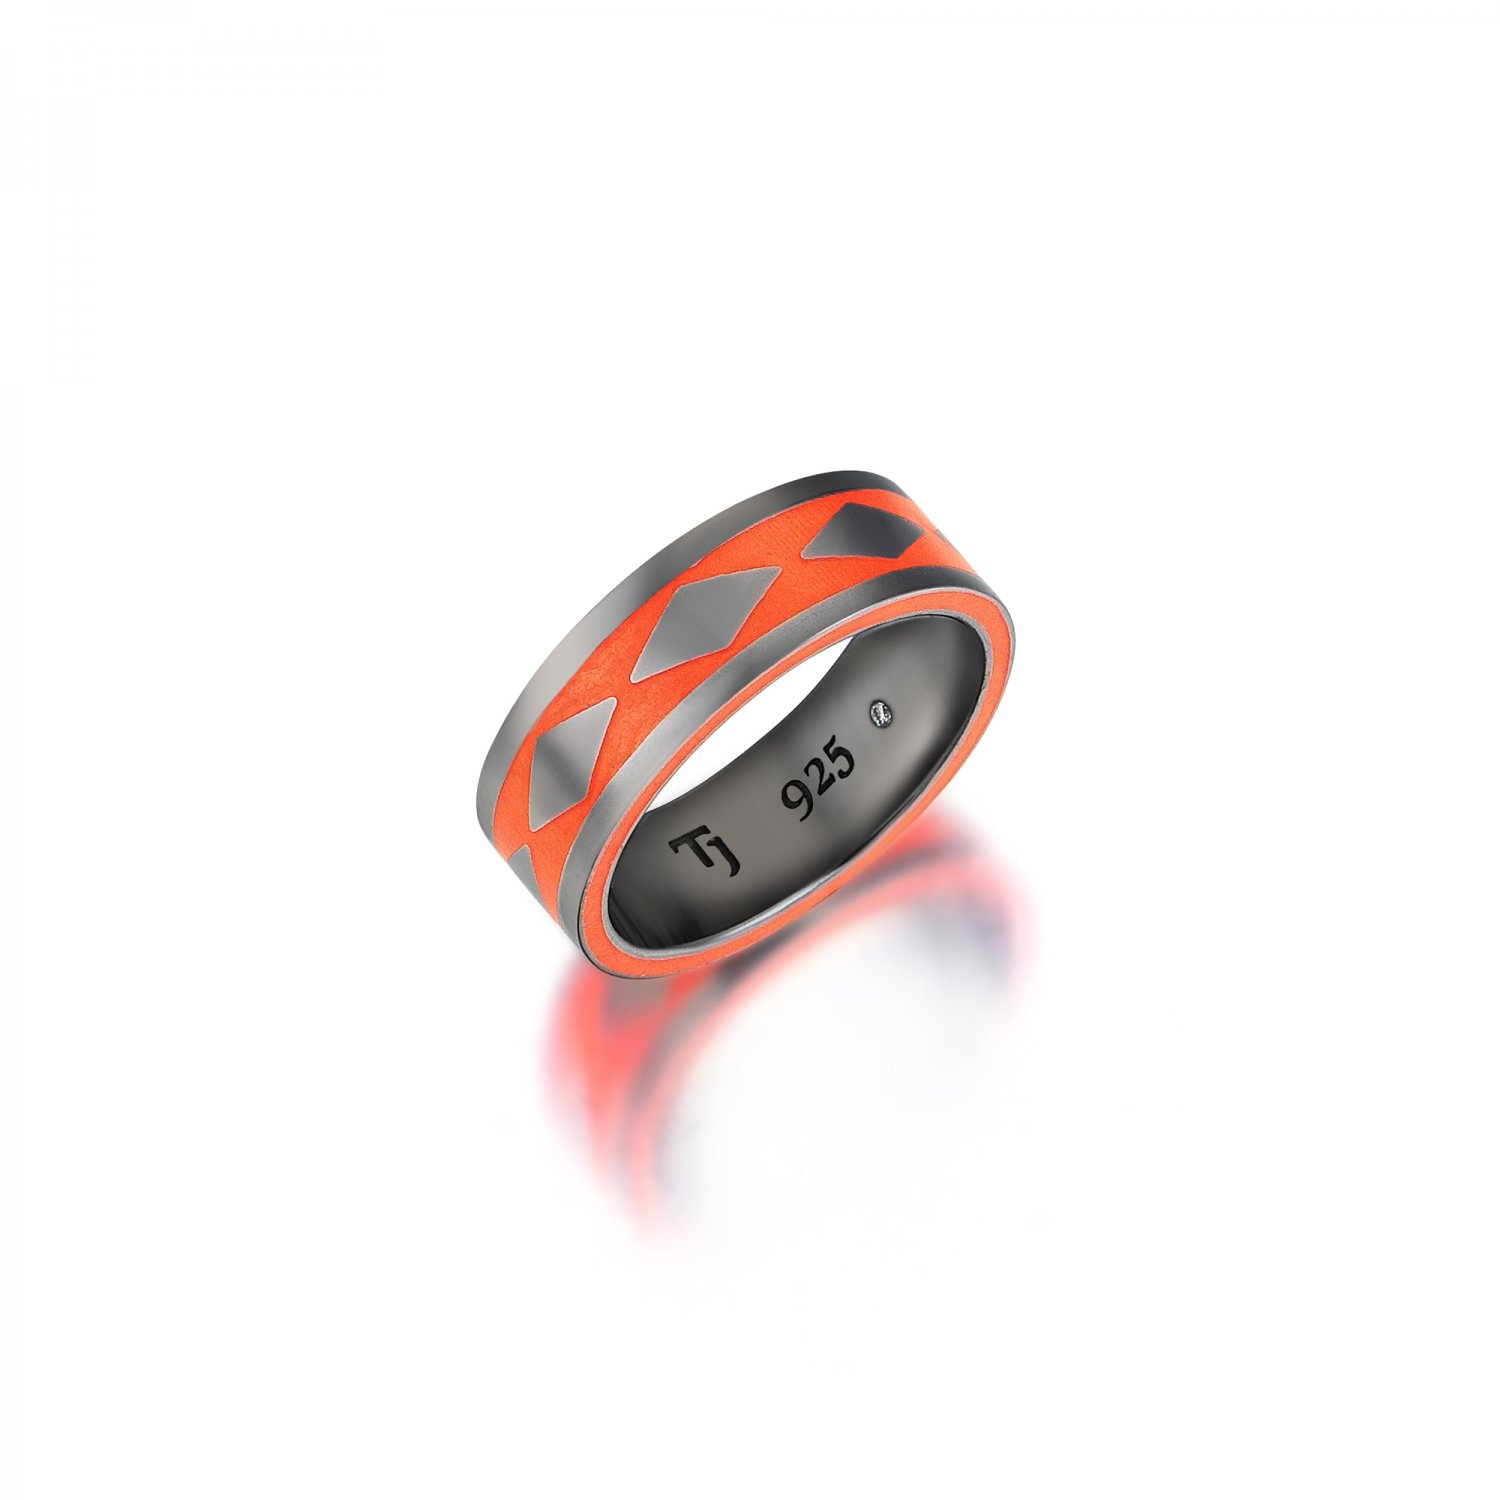 Cubic Snake Band in Silver - 7,70mm - ORANGE - Sides Enamel